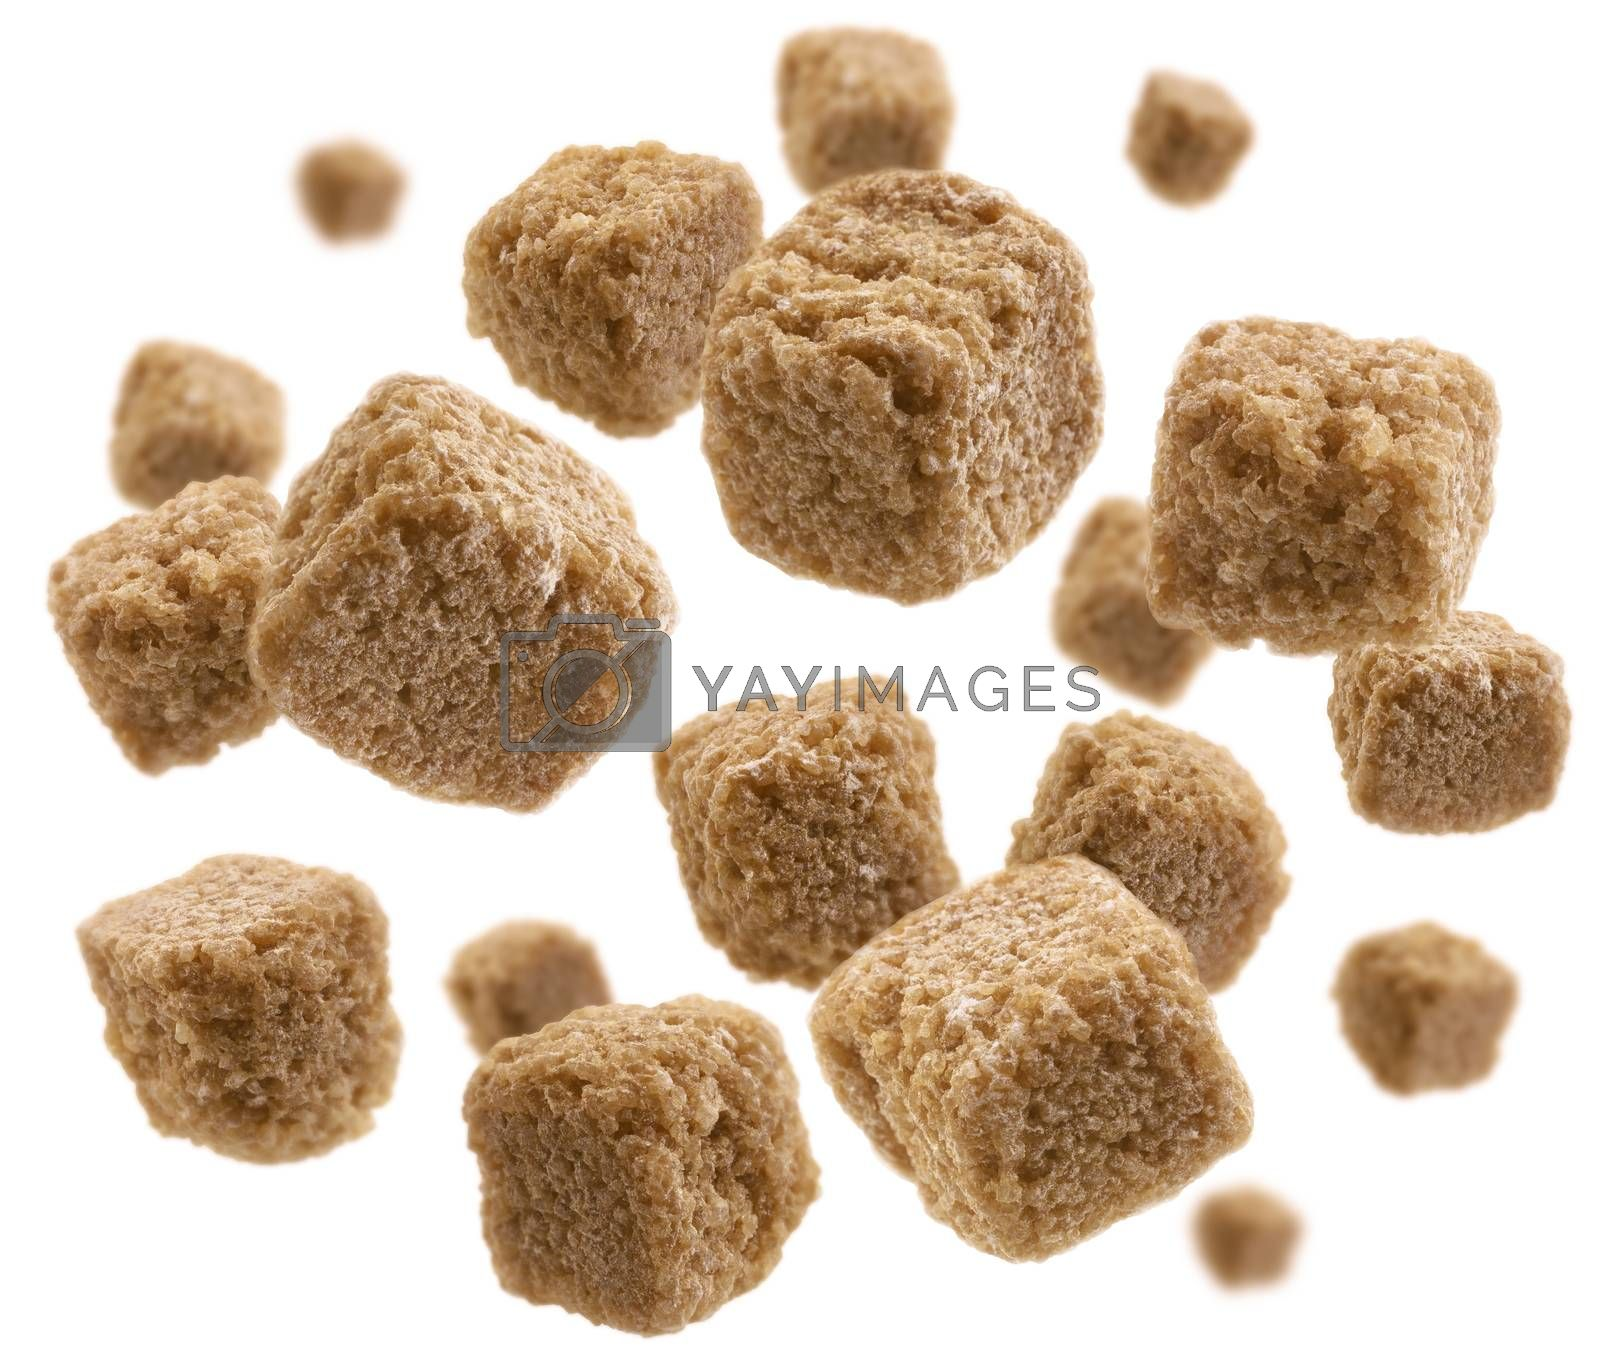 Brown cane sugar levitates on a white background.